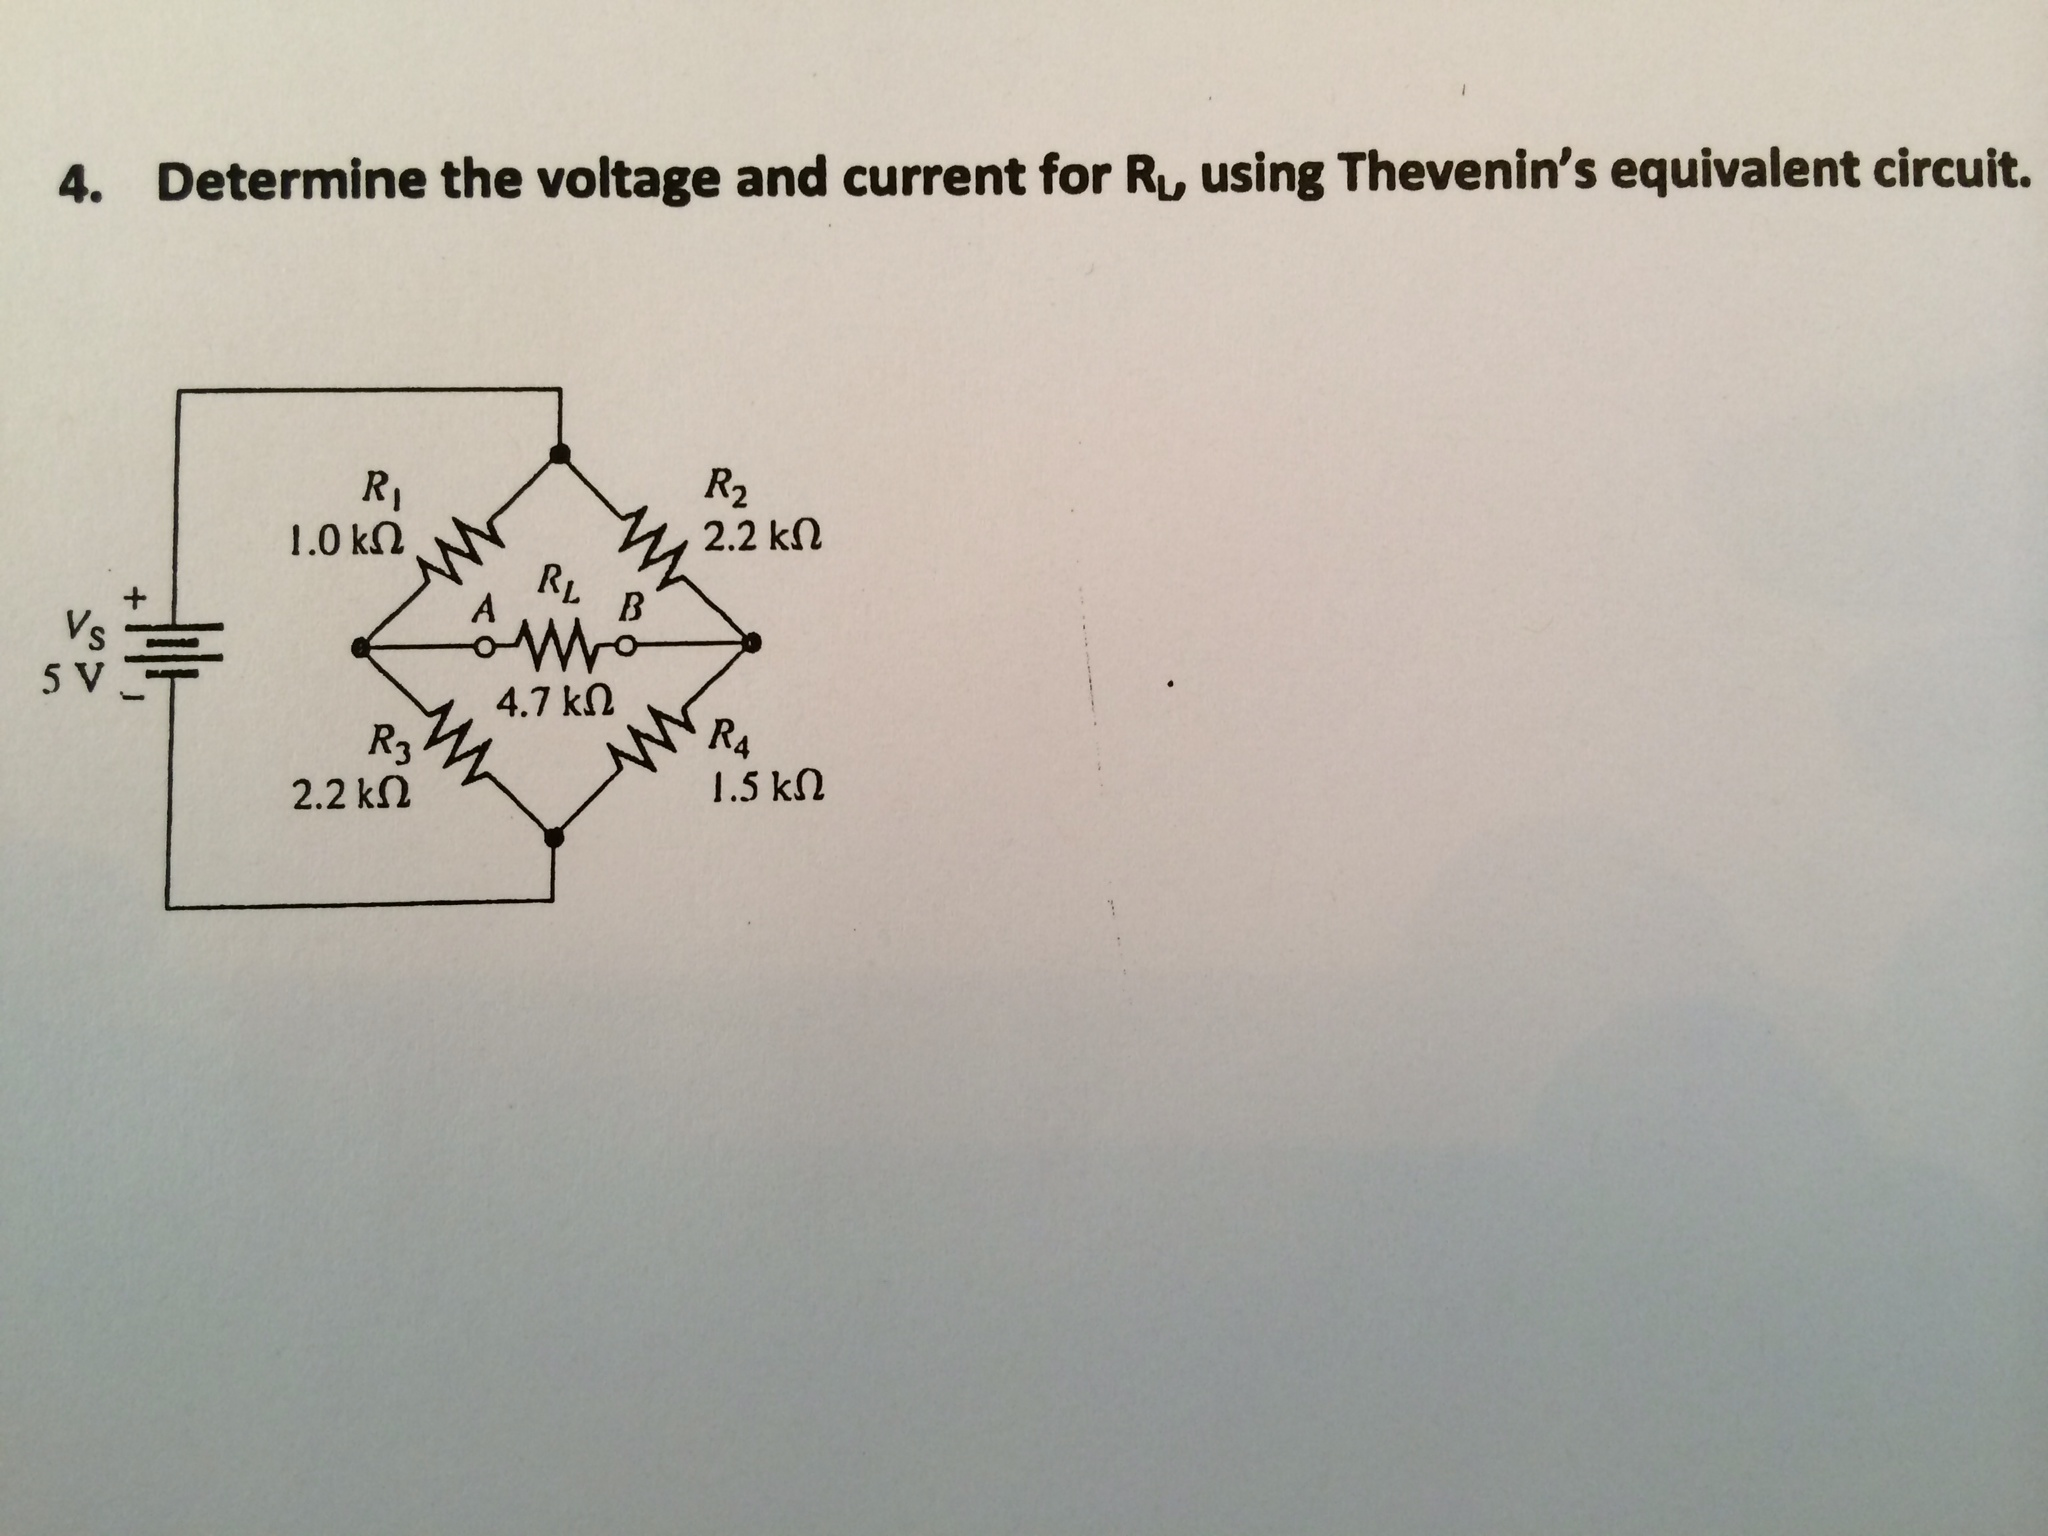 Determine the voltage and current for RL, using Th